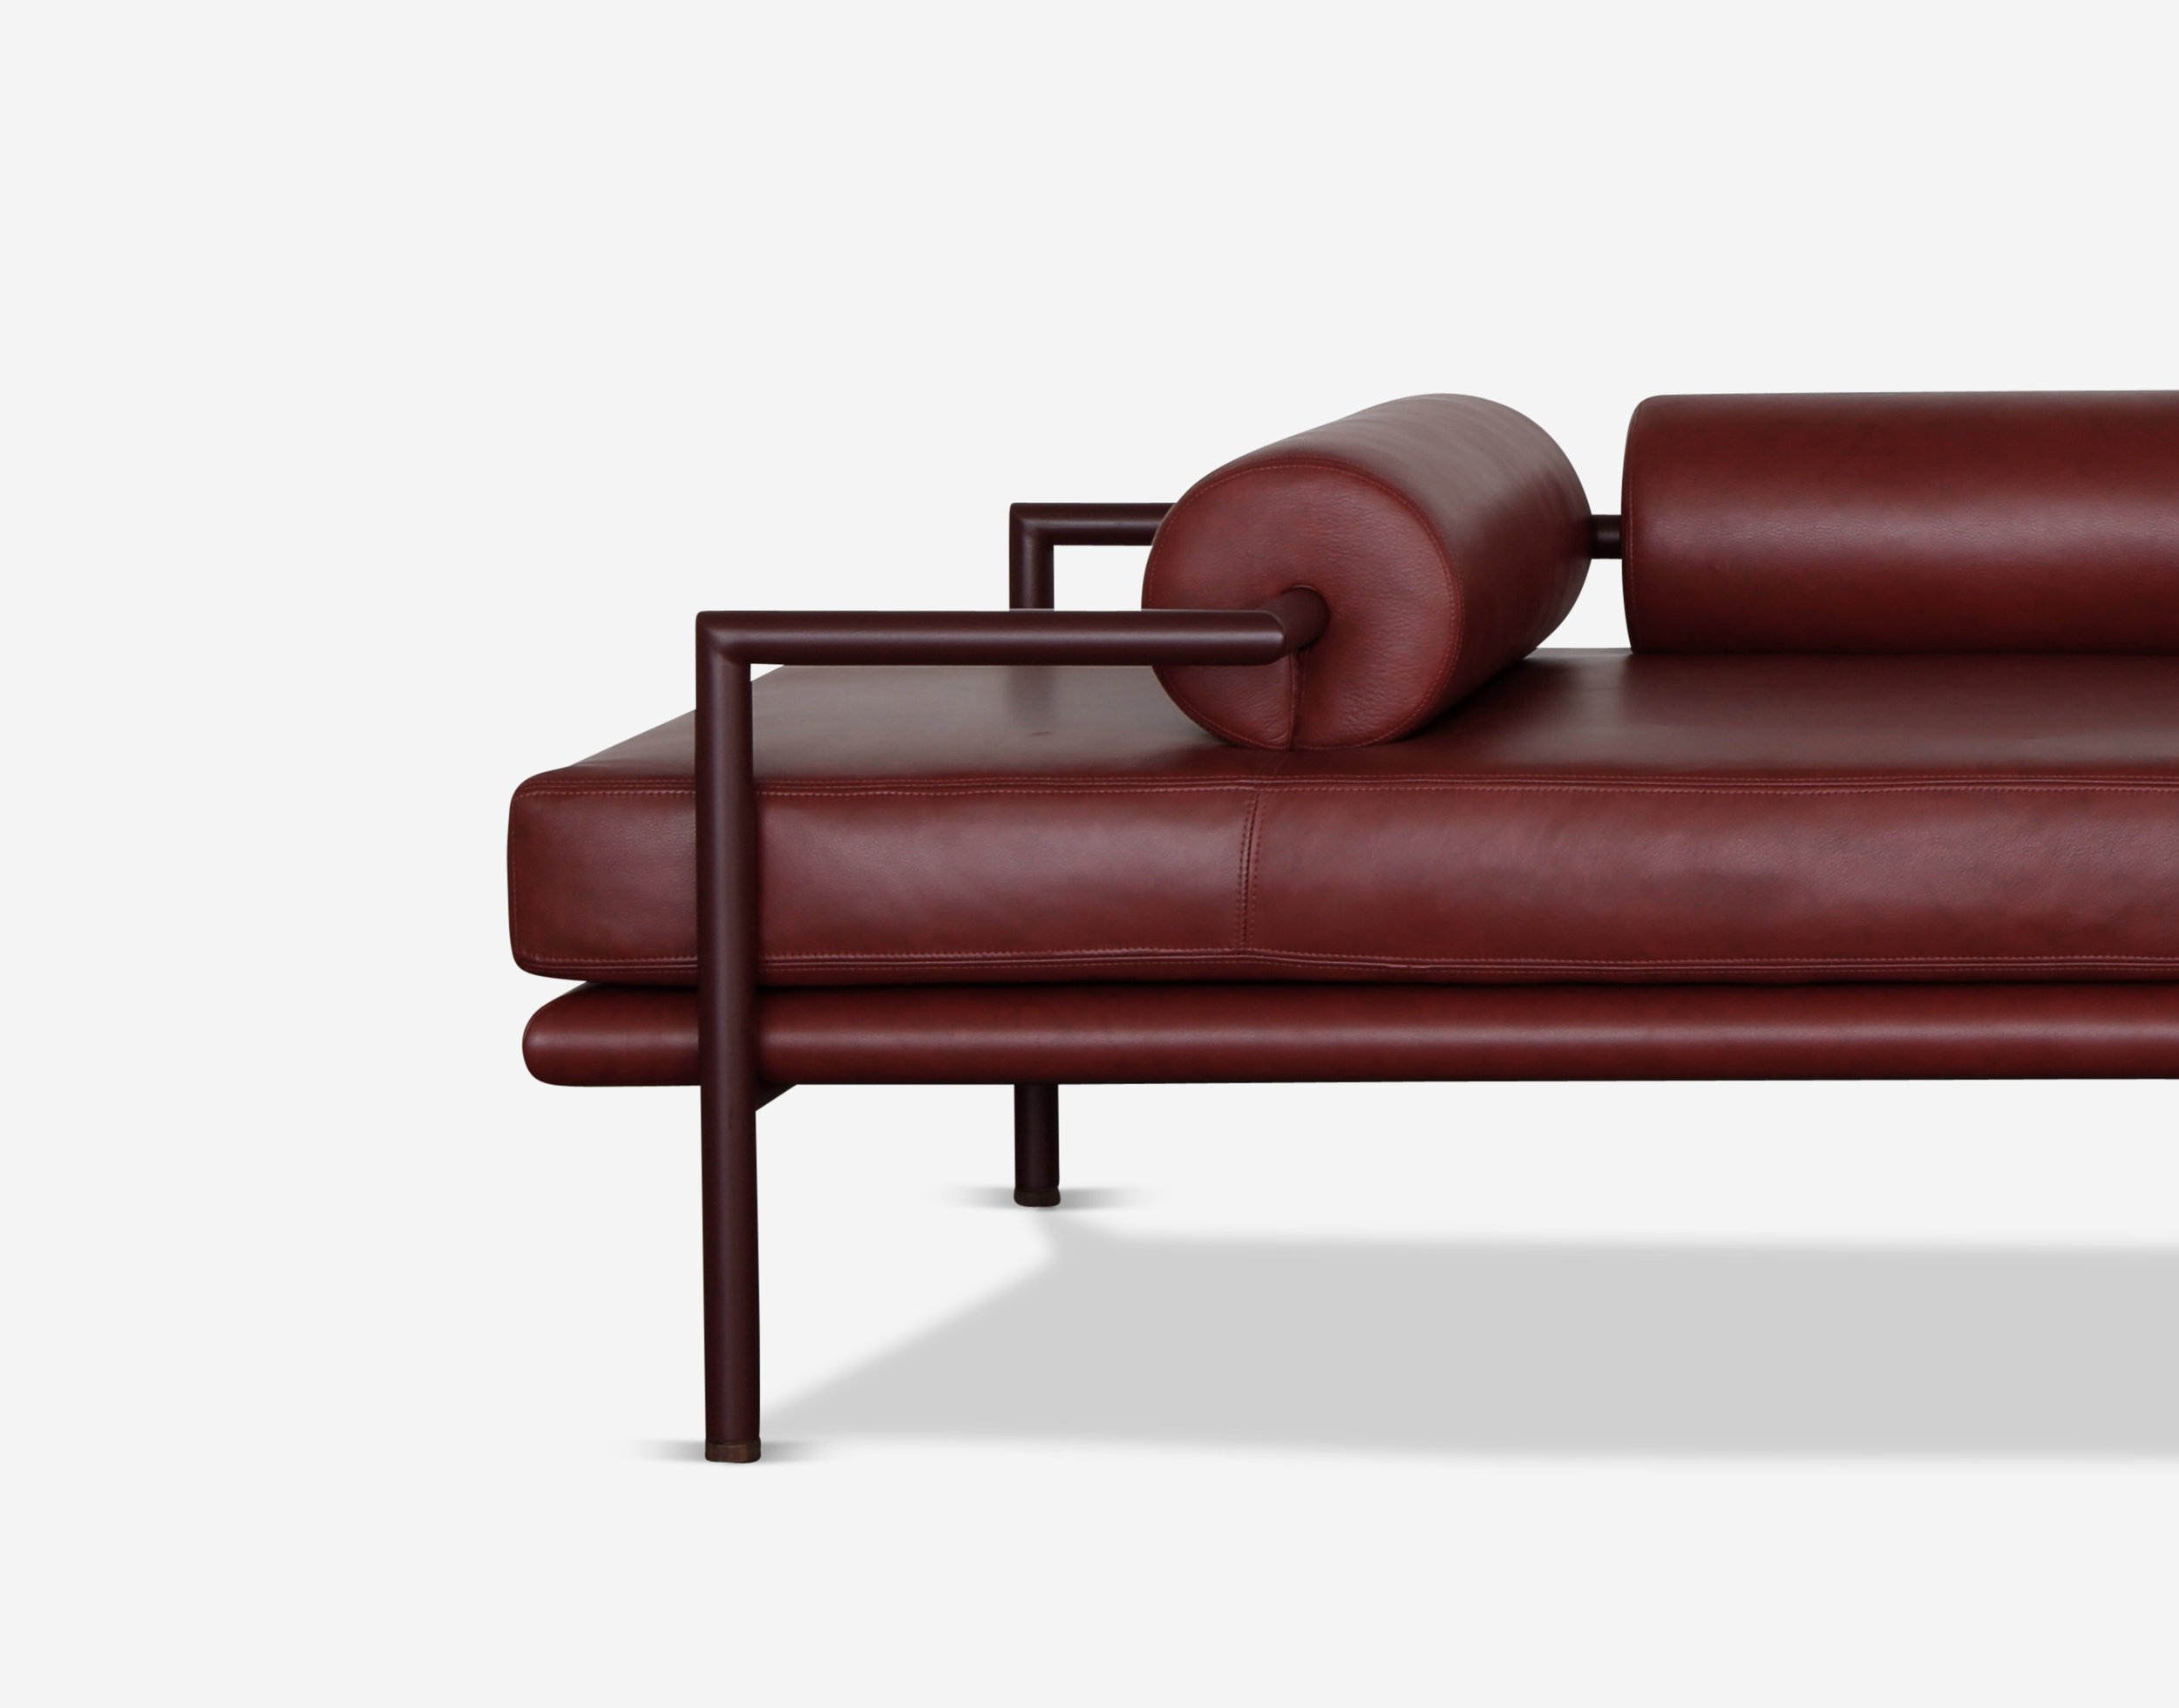 Luteca_JI_Dorcia -Daybed_Red Leather_D-W.jpg